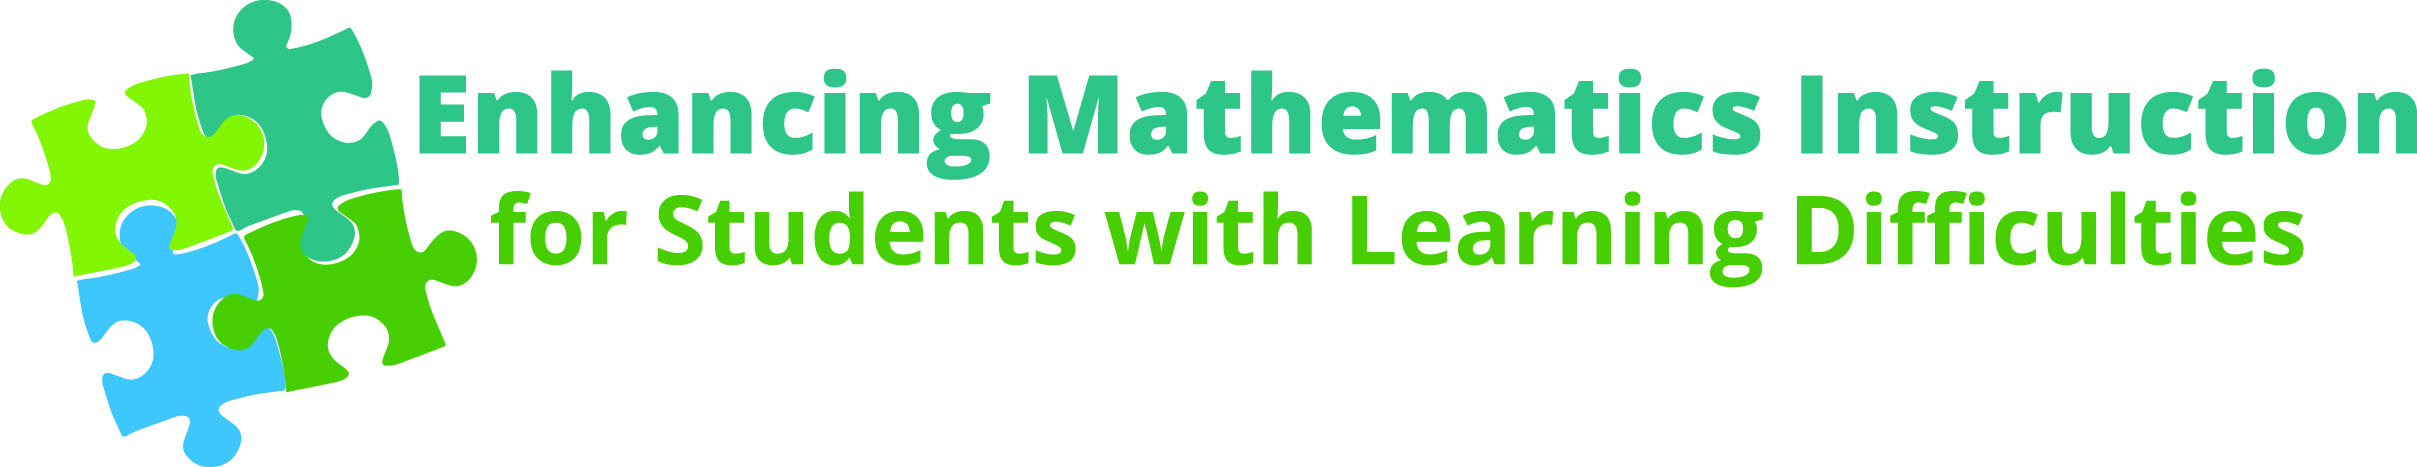 logo for Enhancing Mathematics